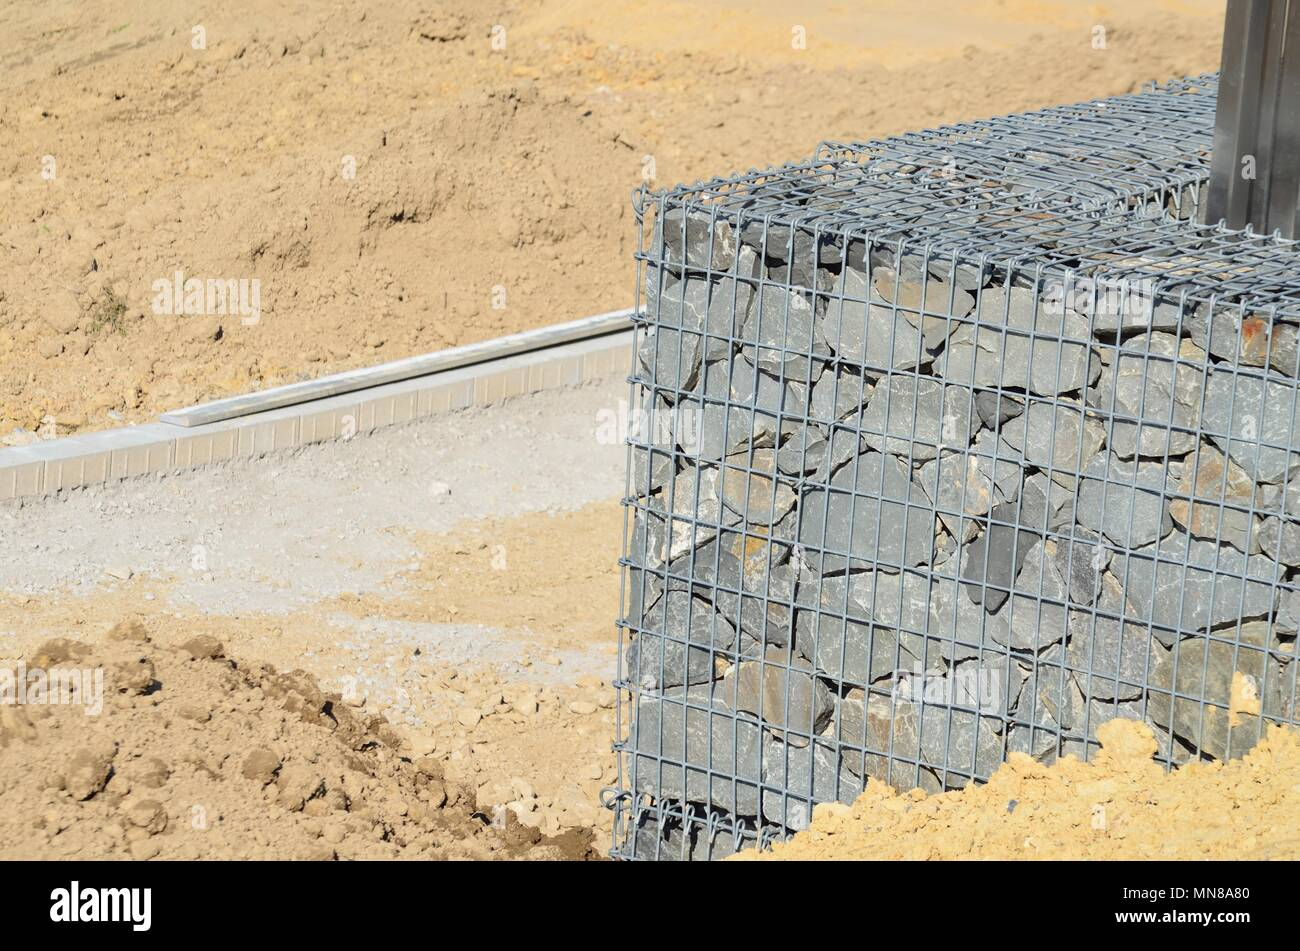 Exelent Stone Filled Wire Cages Ideas - The Wire - magnox.info